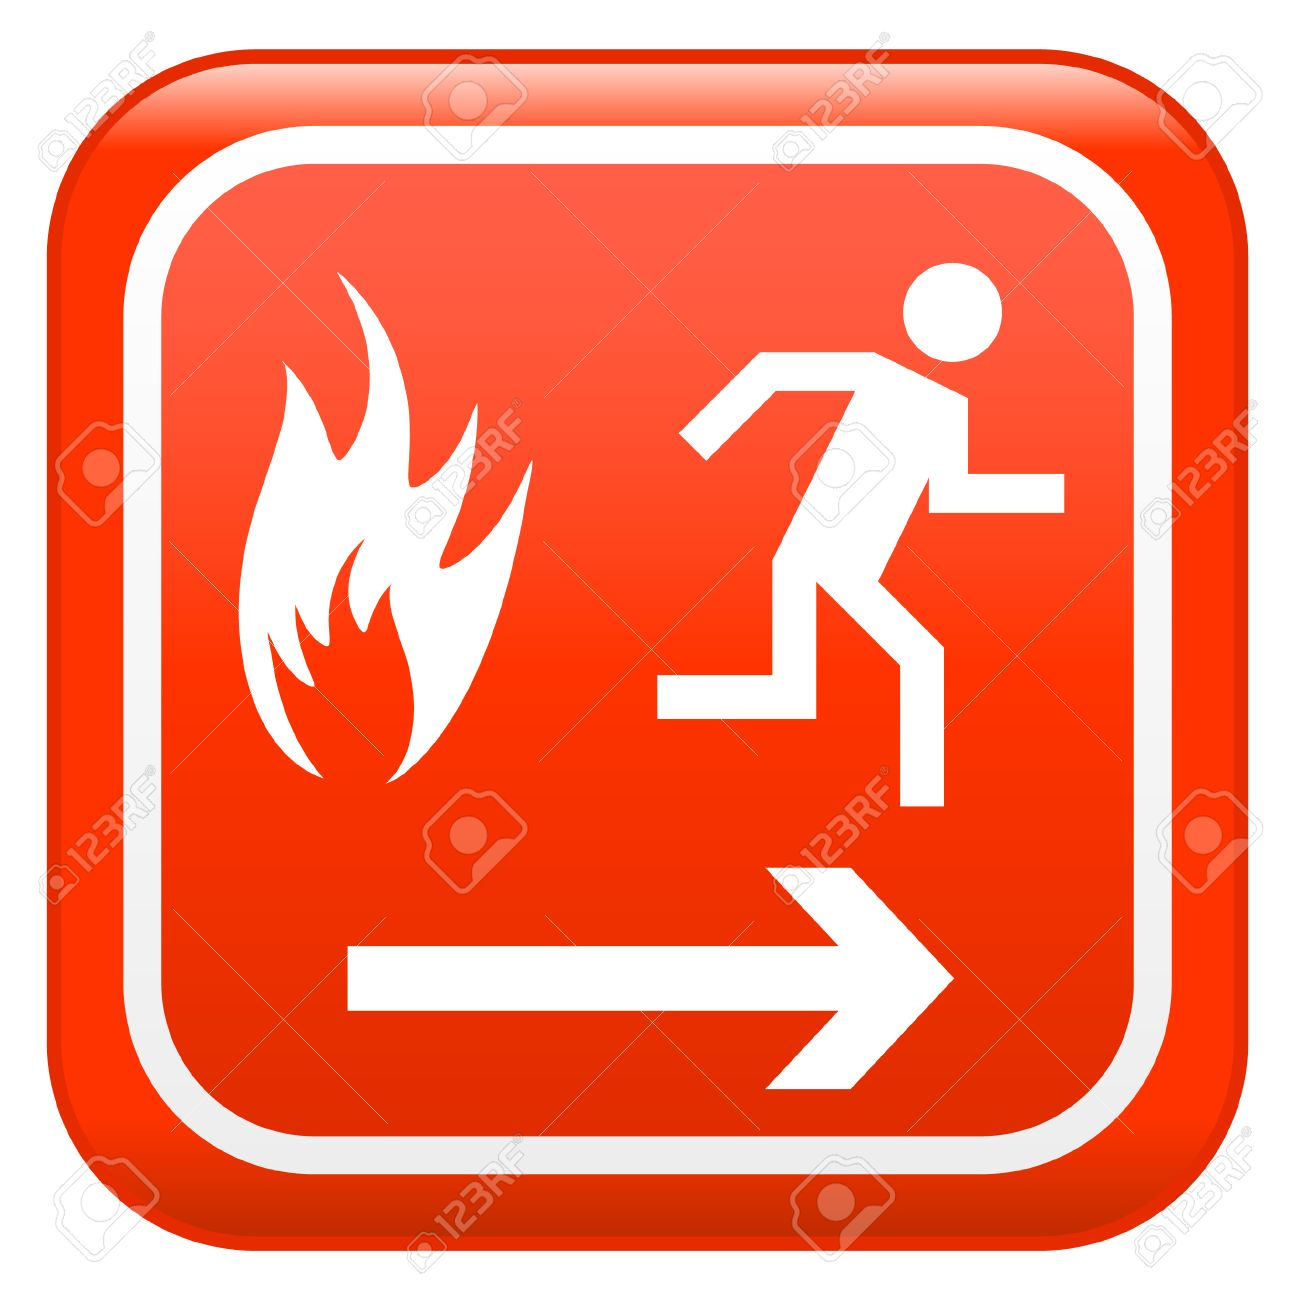 hight resolution of emergency fire safety sign stock vector 5503928